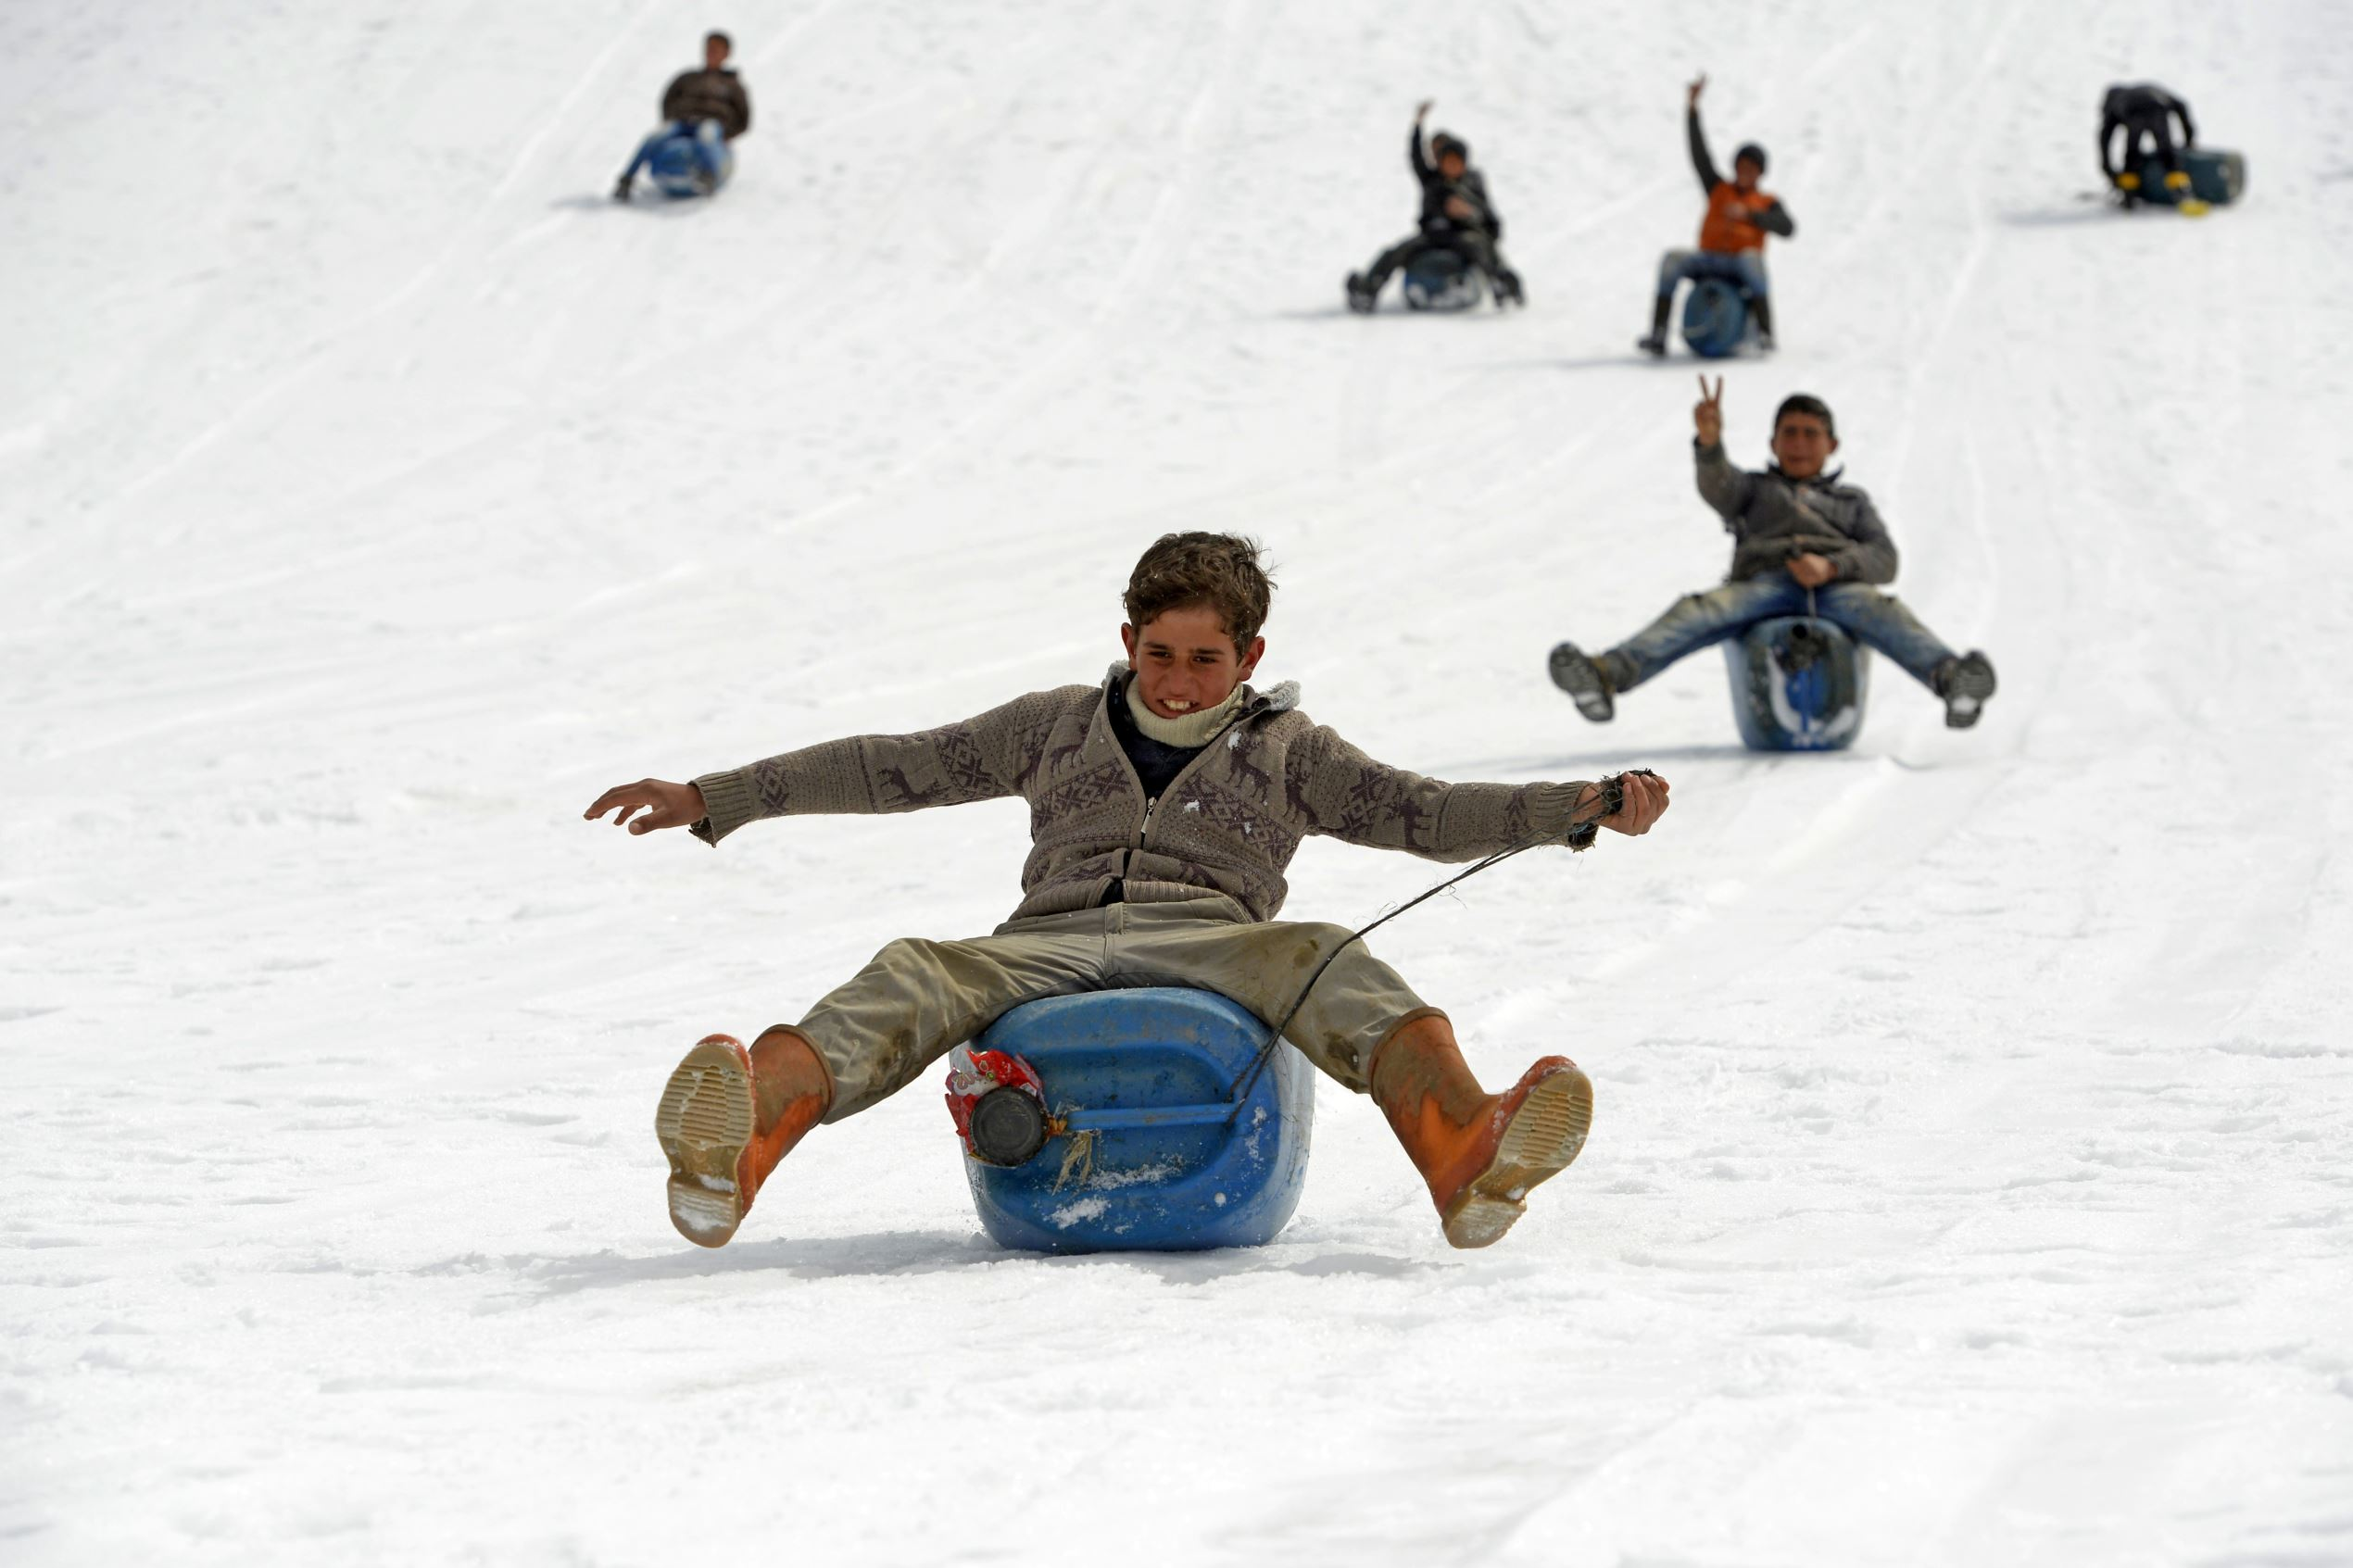 Слайд 27 из 86: VAN, TURKEY - MARCH 5: Youths slide down on snow-covered slope from the top of the hill at Yucelen neighborhood of Cilli district of Caldiran town in Van, Turkey on March 5, 2016. (Photo by Ozkan Bilgin/Anadolu Agency/Getty Images)